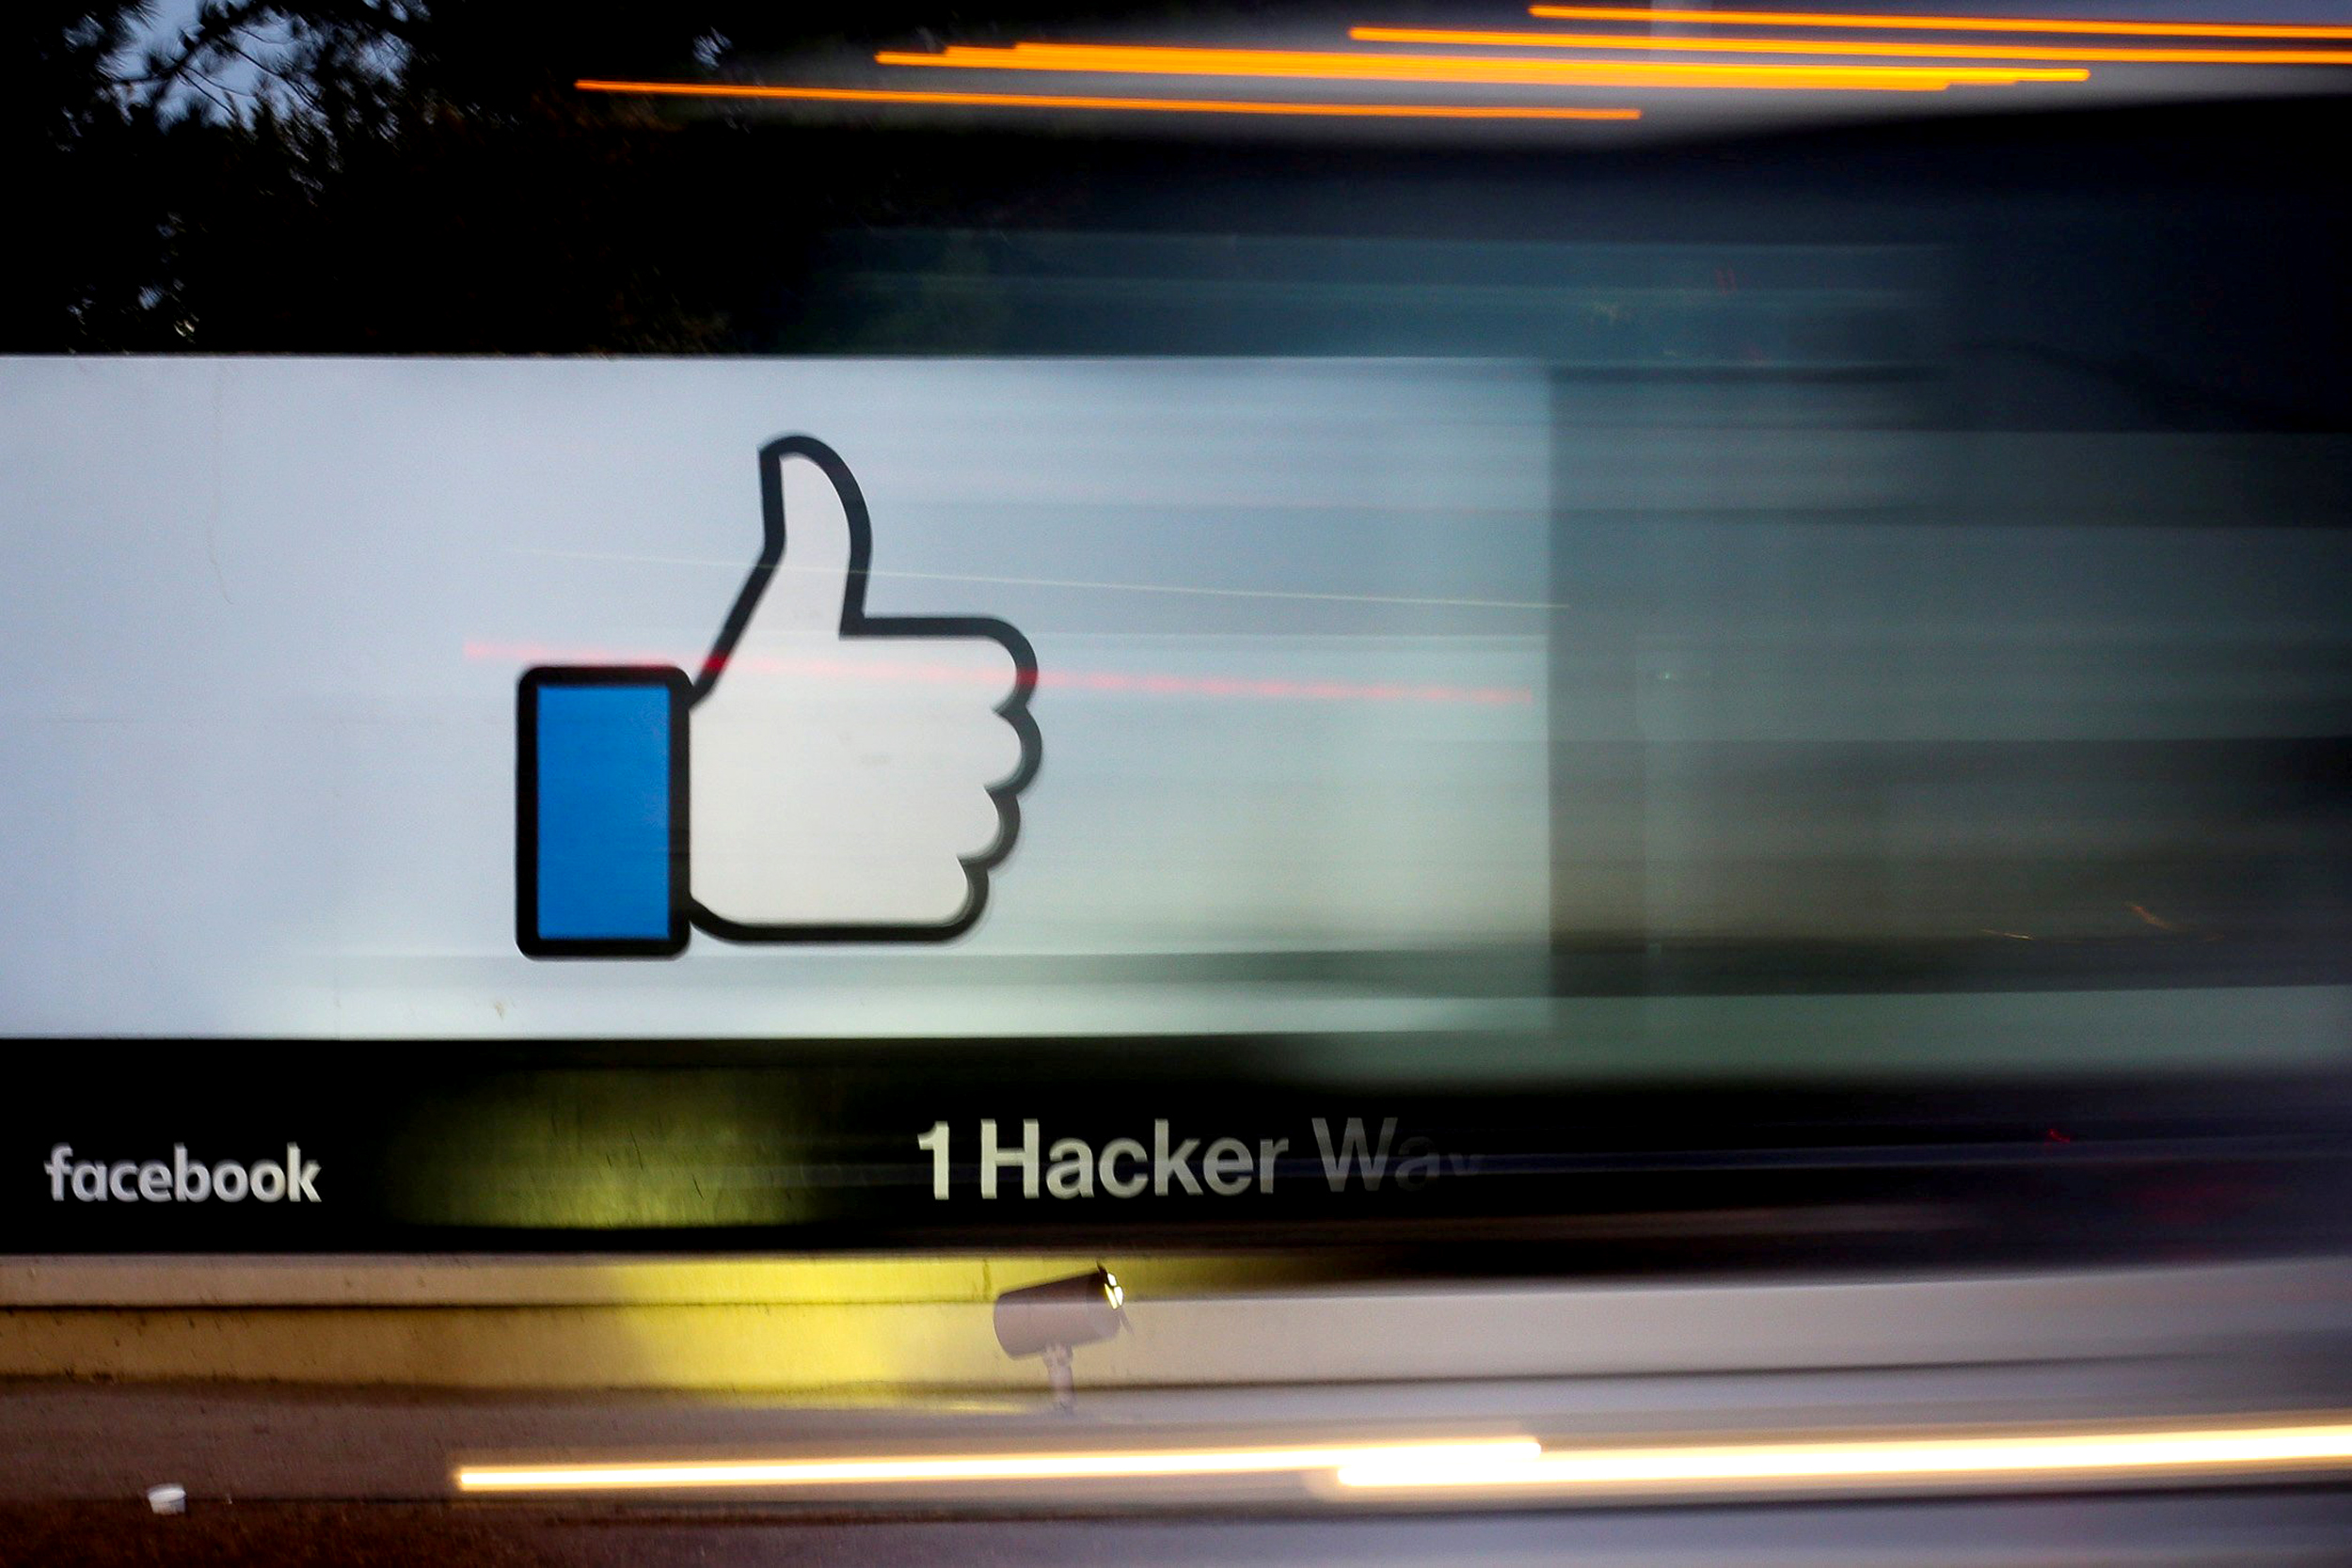 nbcnews.com - Facebook hired firm with 'in-house fake news shop' to combat PR crisis